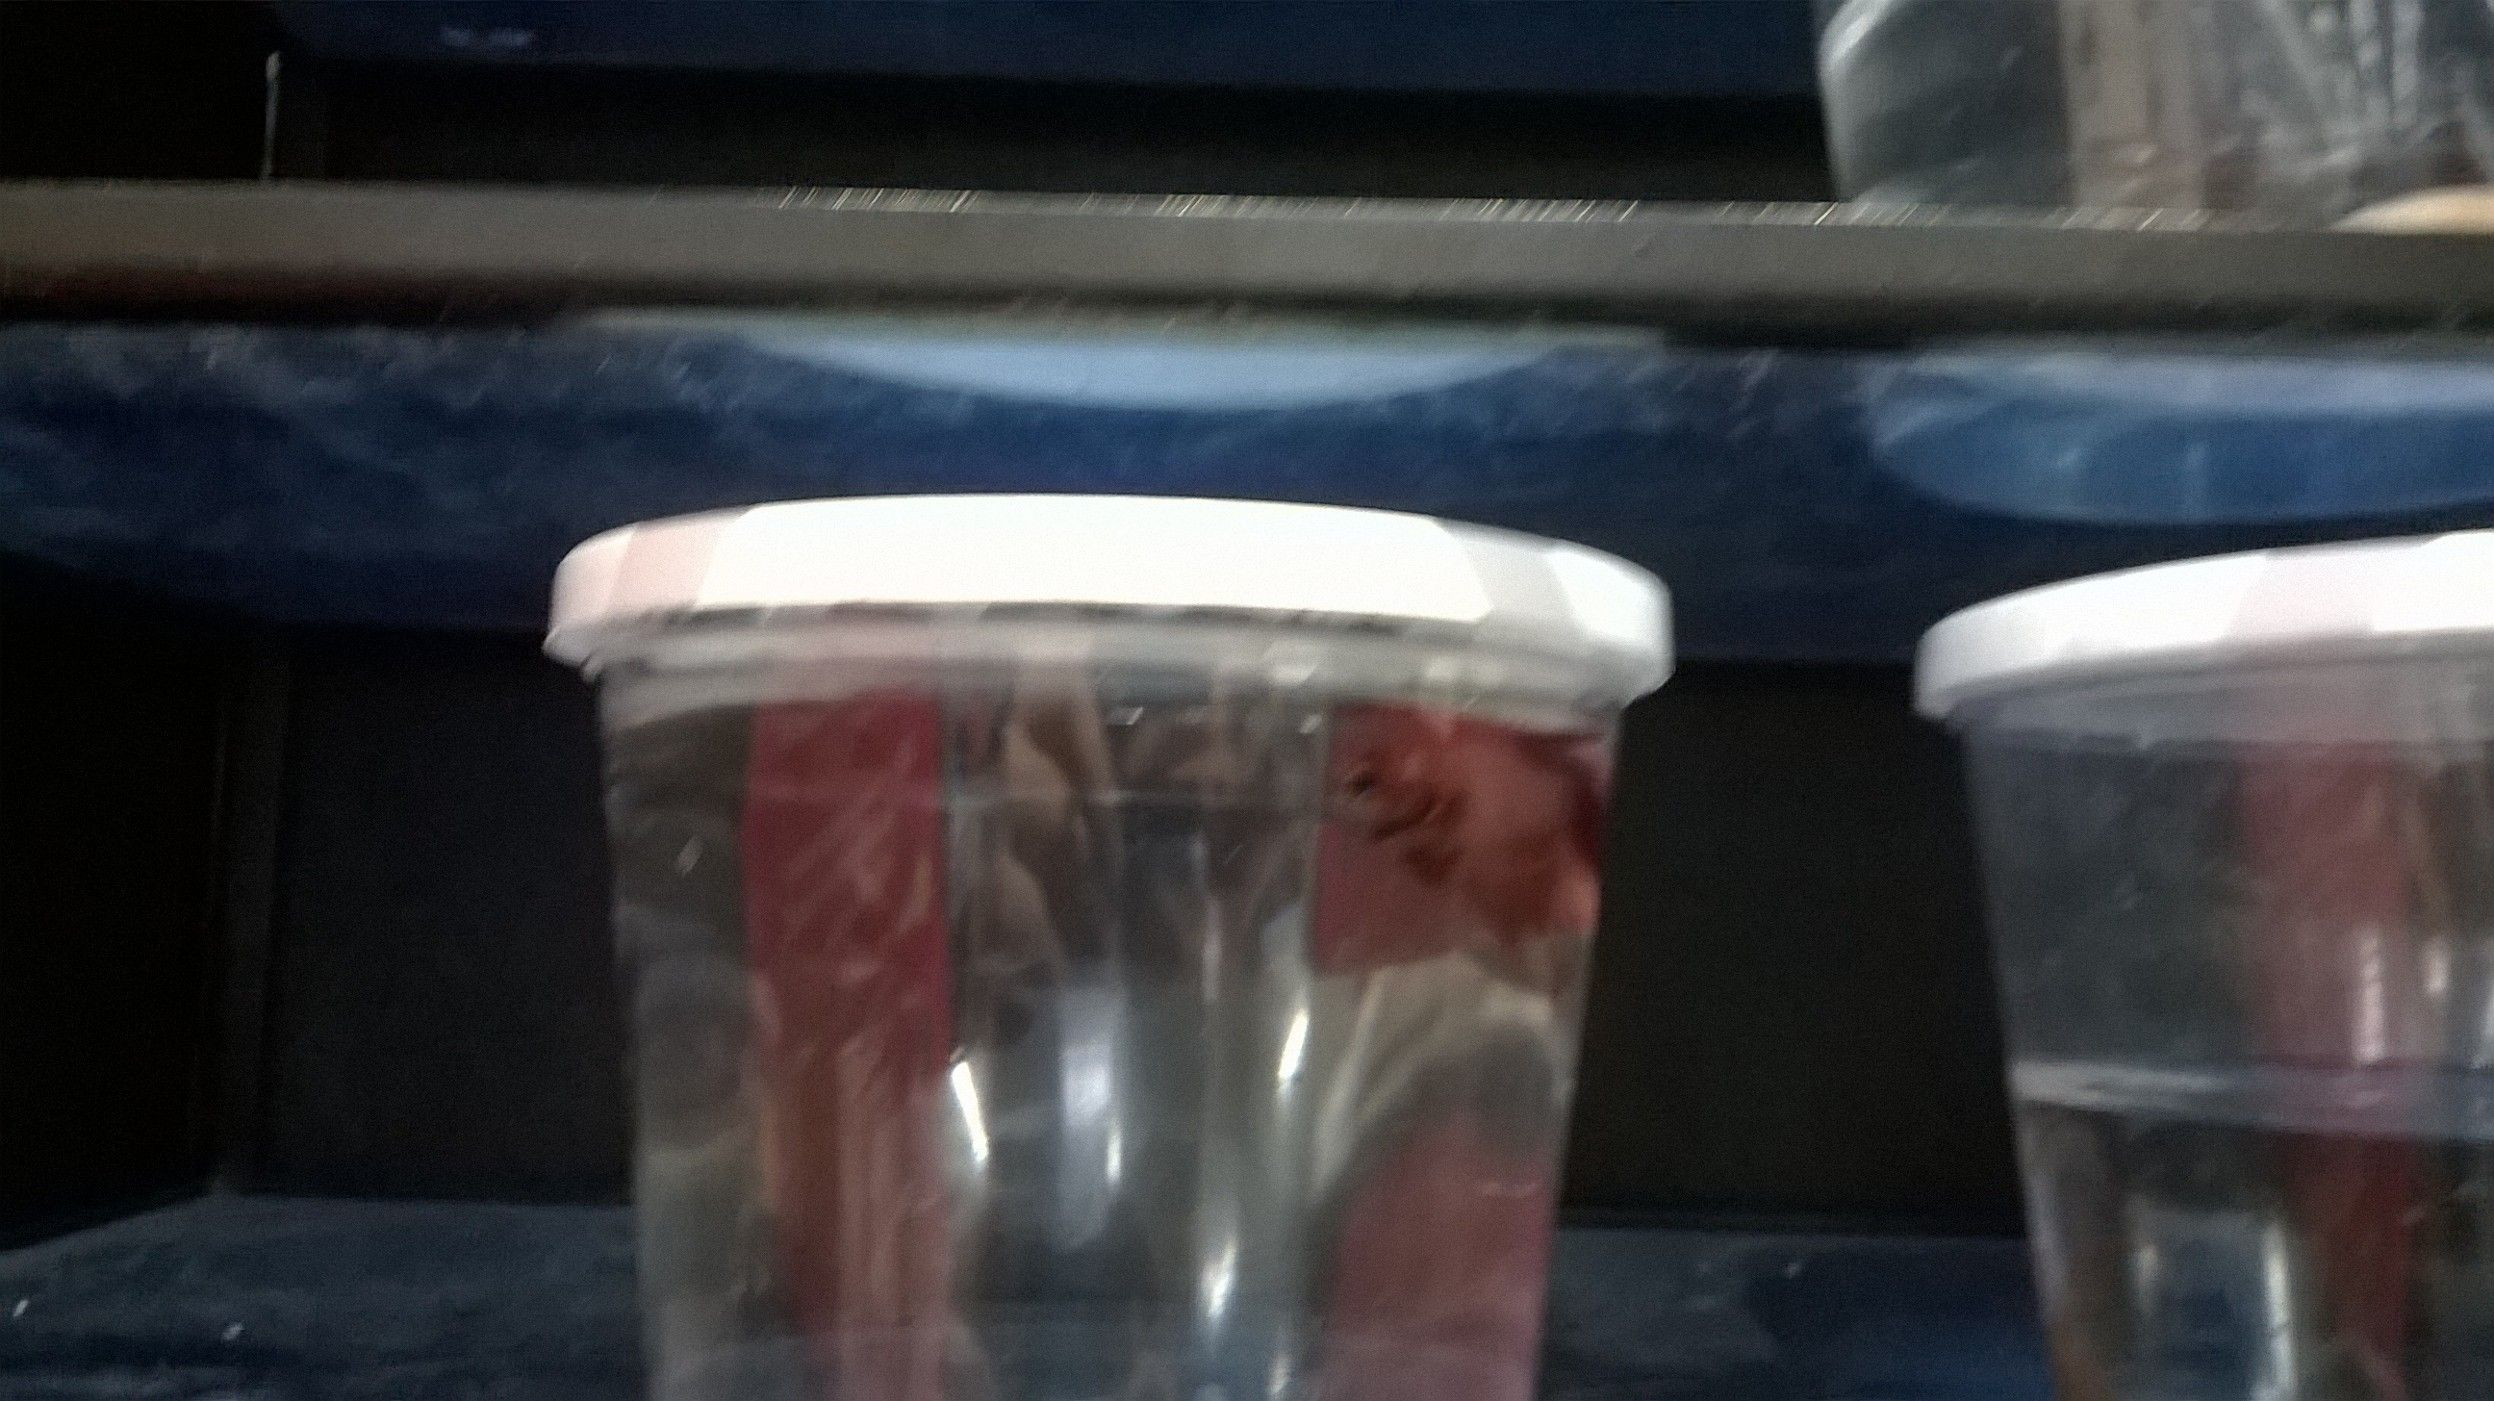 these are the cramped containers that walmart keeps their betta fish